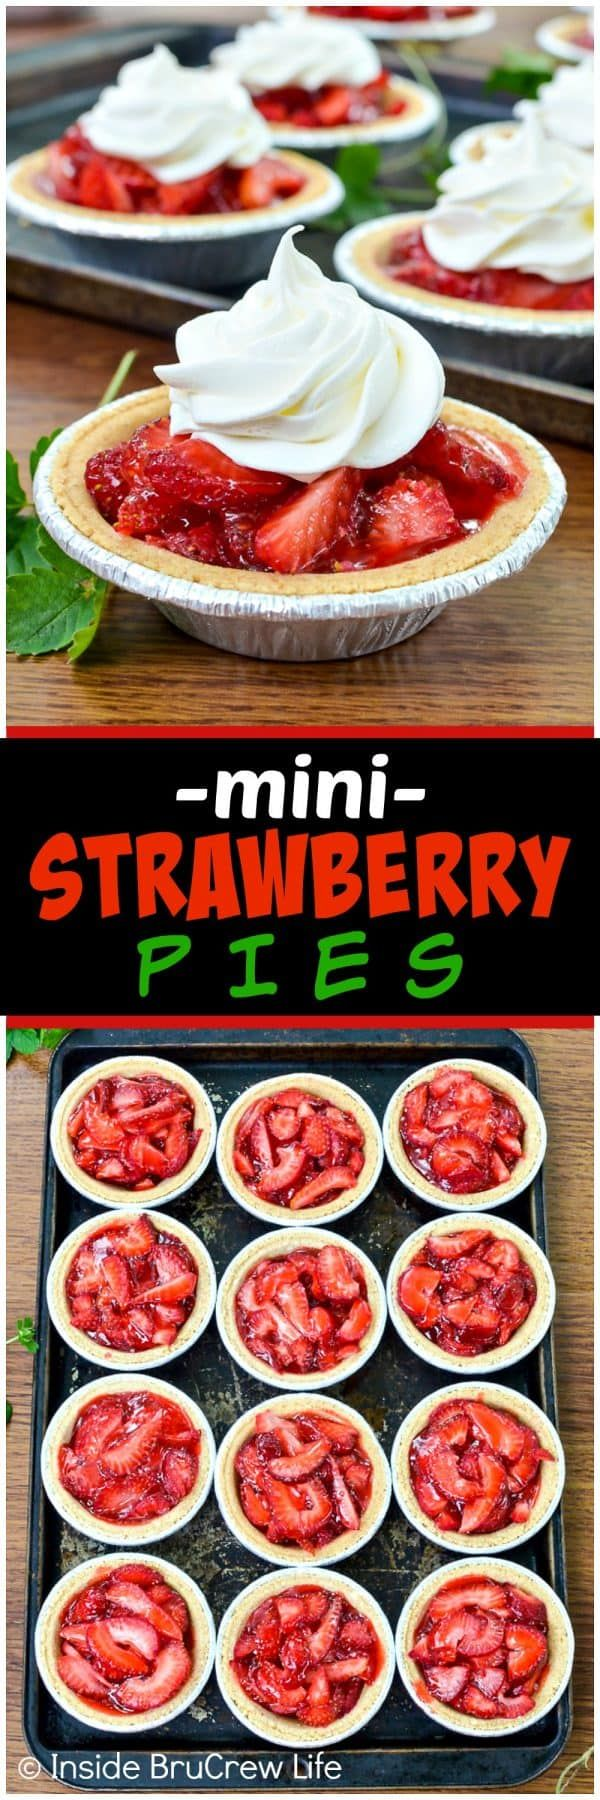 Mini Strawberry Pies - little graham cracker crusts filled with fresh strawberries and strawberry Jello makes a great little dessert for any occasion. Make this easy recipe for spring and summer parties or picnics! #strawberry #pie #grahamcrackercrust #minidesserts #summer #mothersday #easy #recipe #fourthofjuly